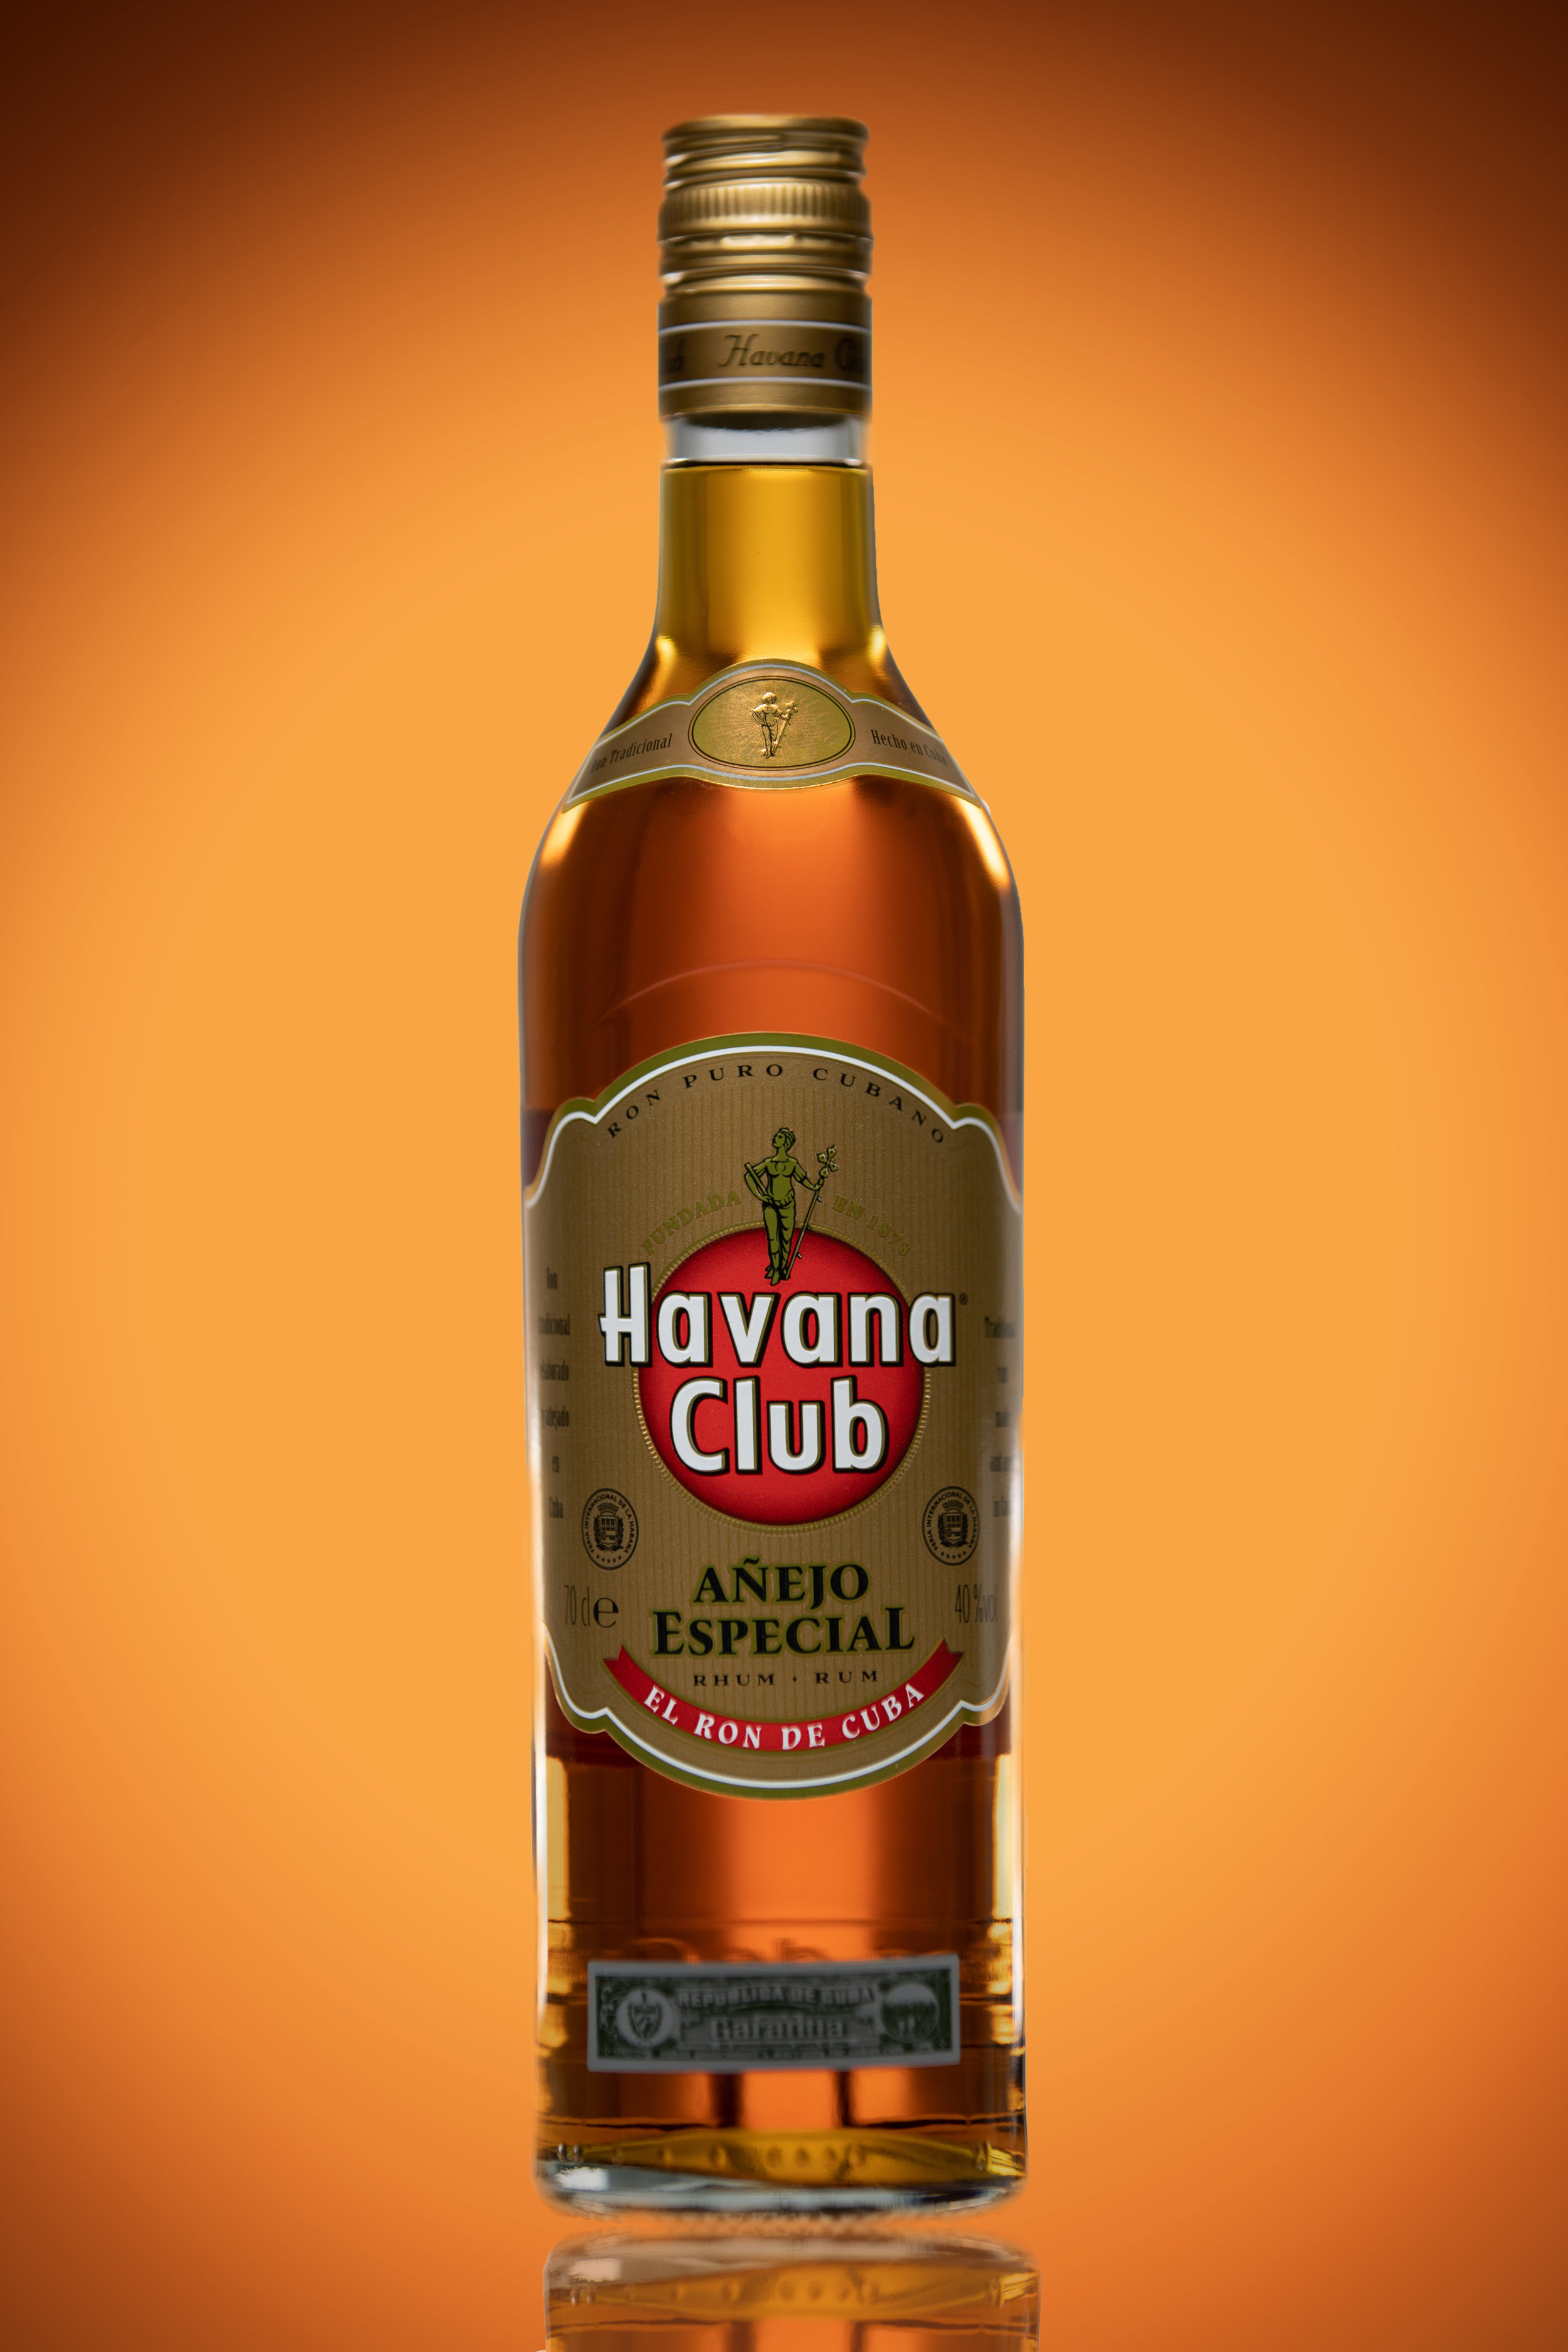 Havana Club Product Photography Mannys Creations.jpg